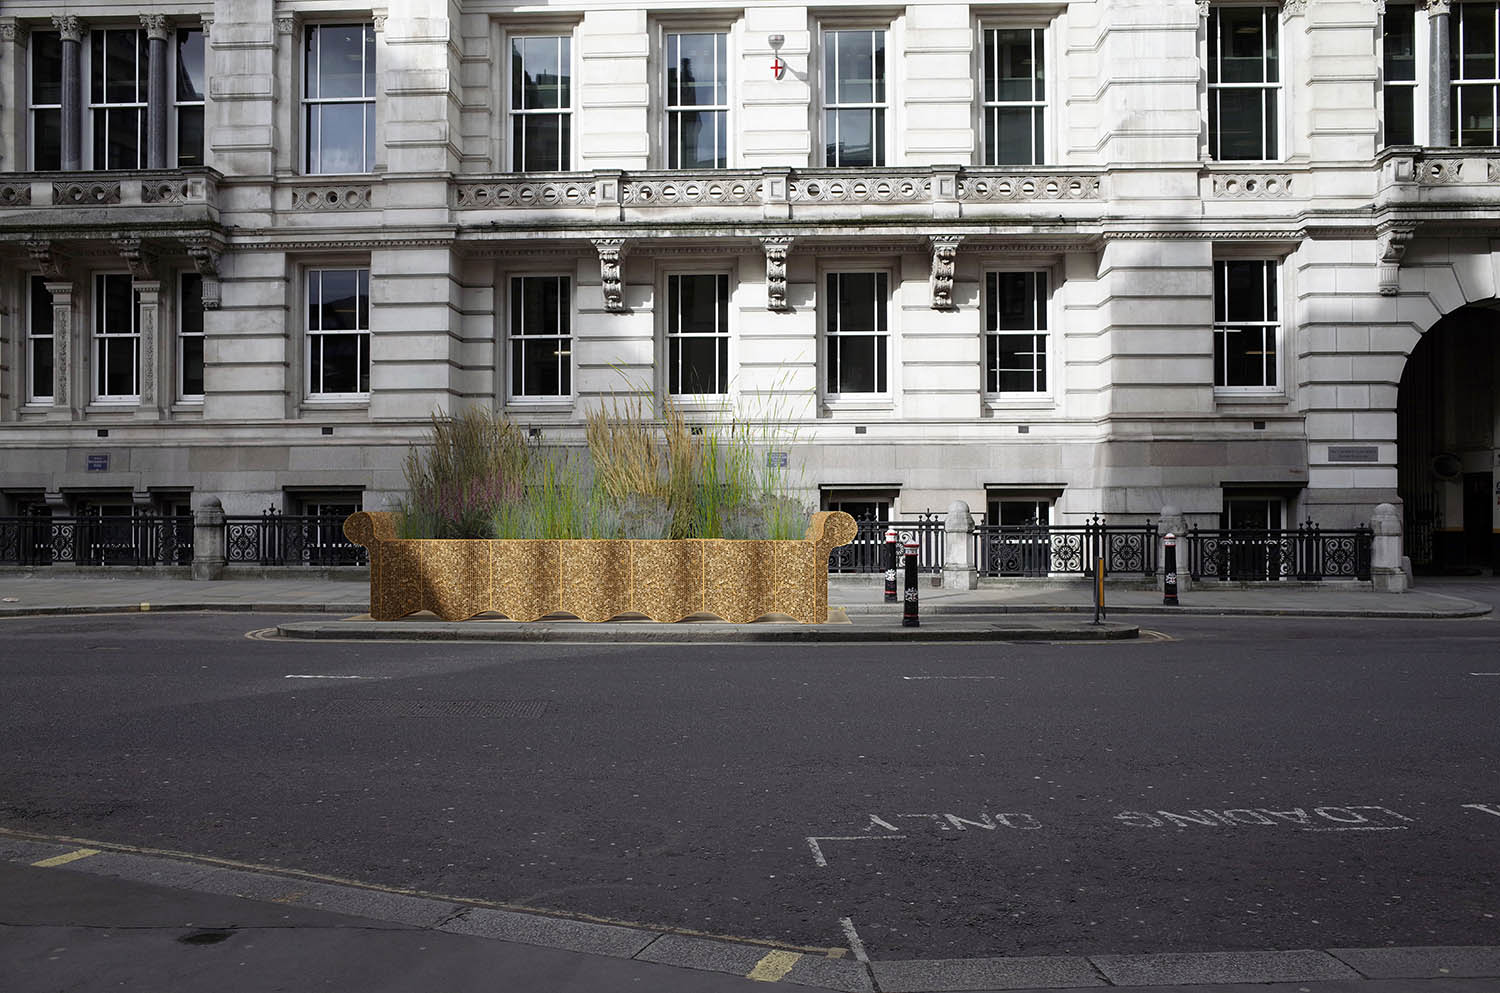 19_City of London Parklets_Image 1.jpg